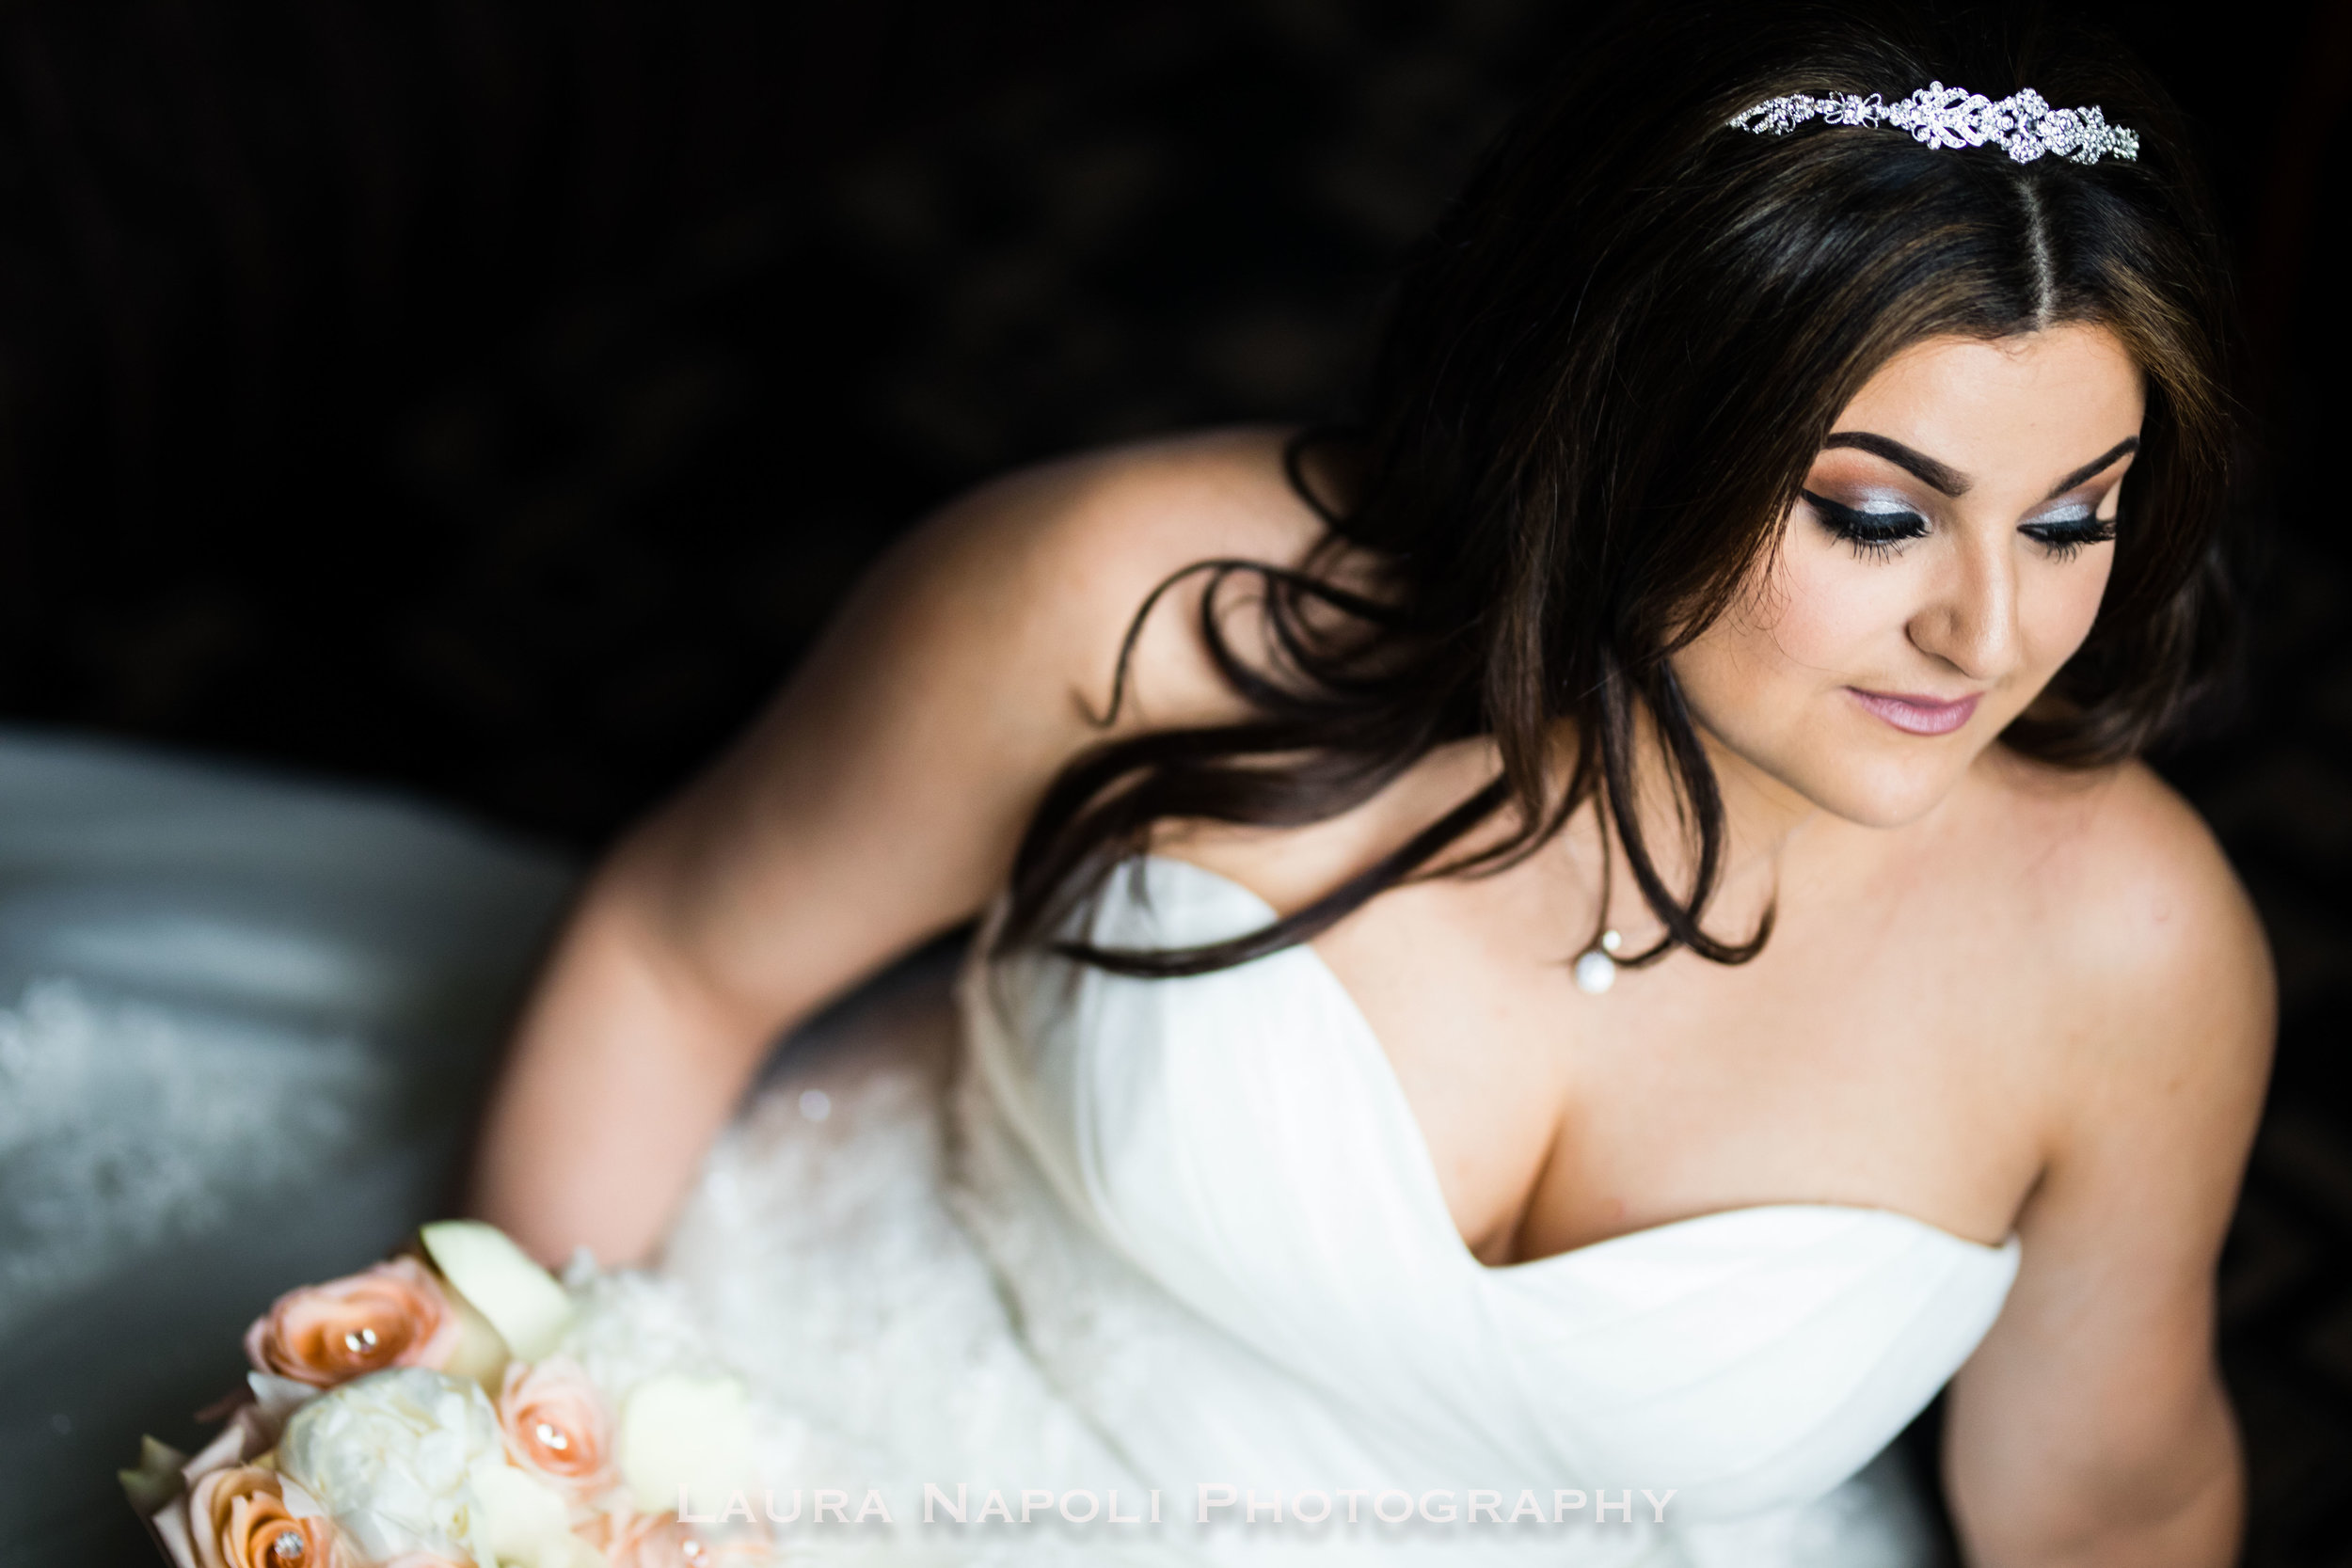 crowneplazacherryhillnjweddingphotographer-9.jpg